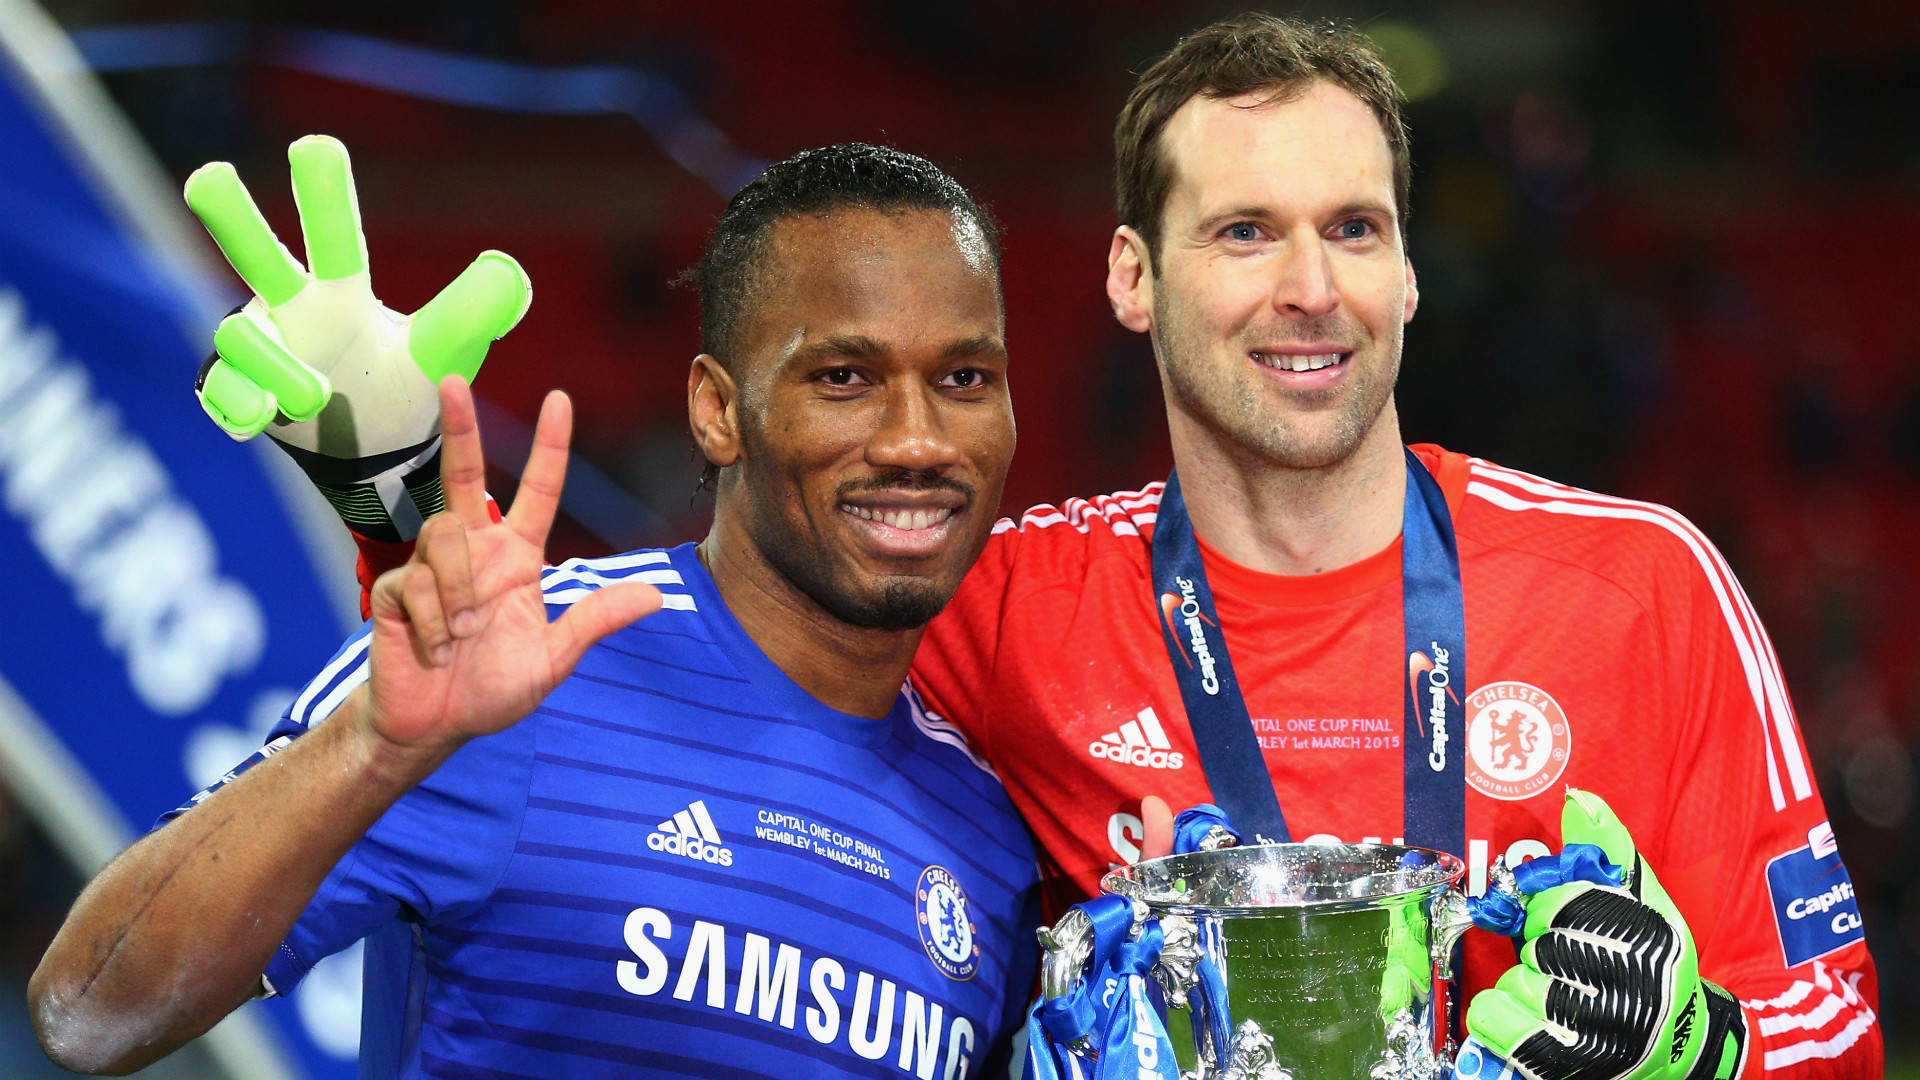 Chelsea want Petr Cech back after he retires from playing at Arsenal